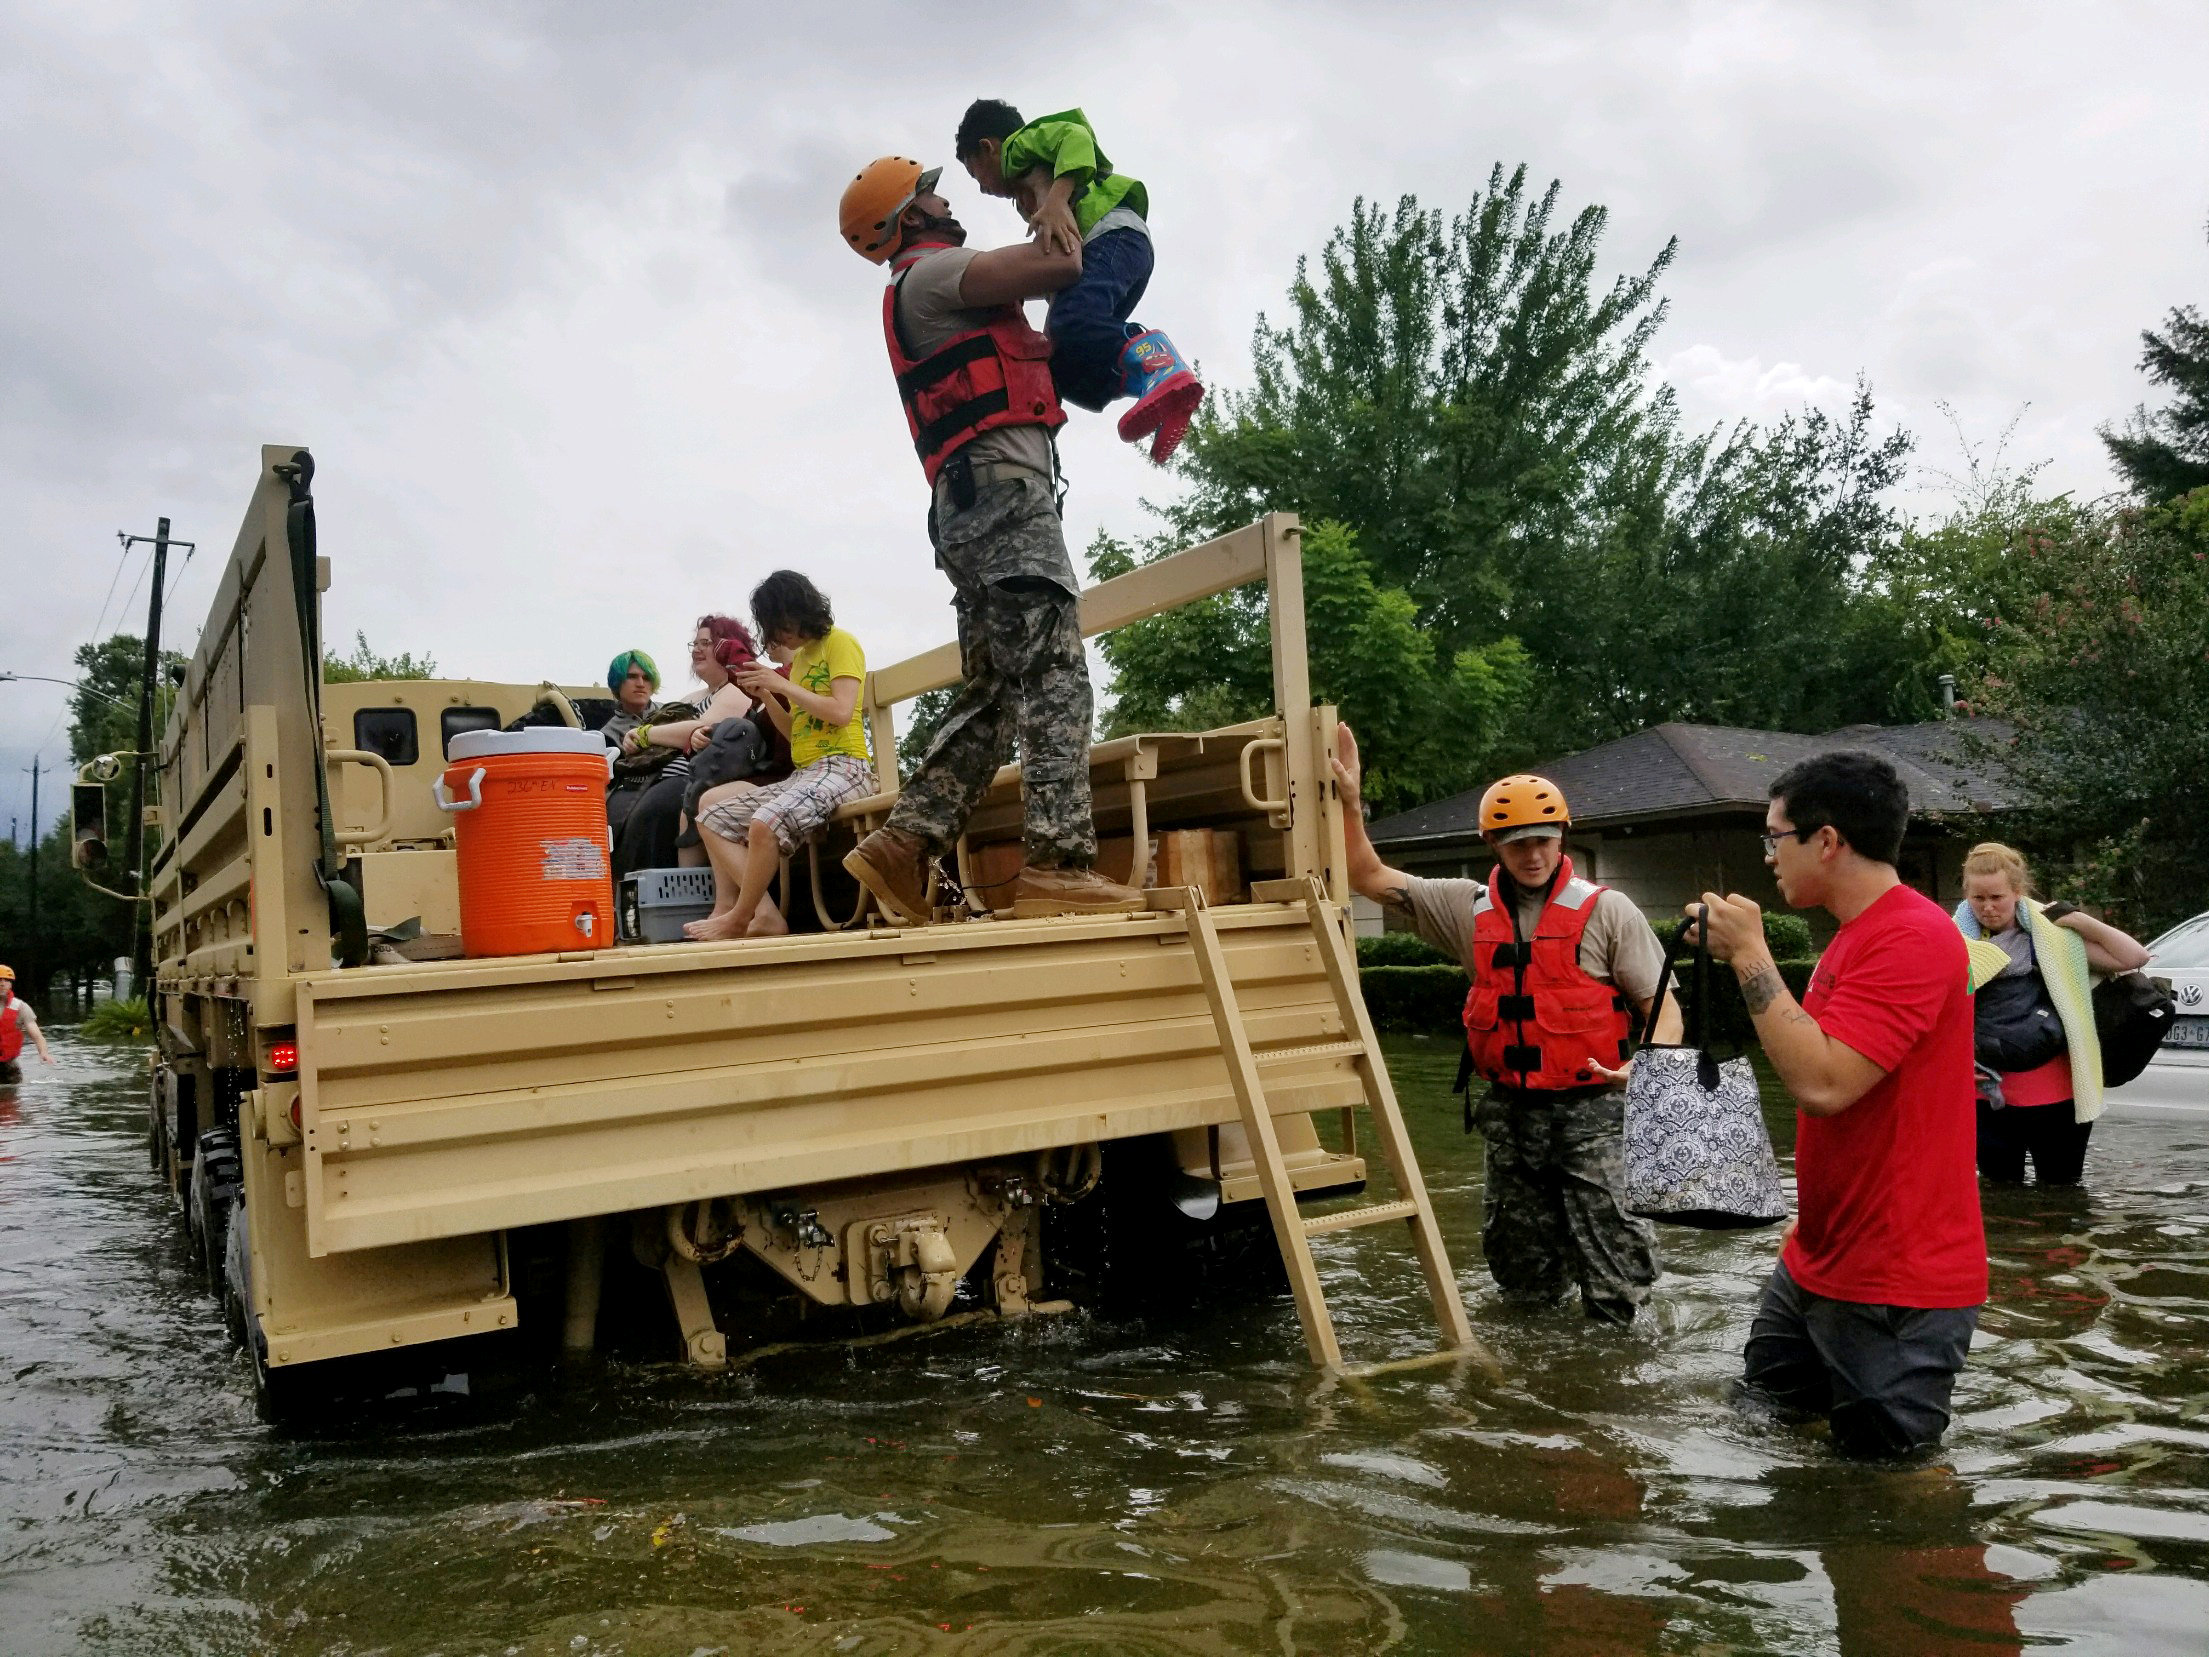 Texas National Guard soldiers aid residents in heavily flooded areas from the storms of Hurricane Harvey in Houston, Texas, U.S. on Aug. 27, 2017 (100th MPAD/Texas Military Department/Handout via REUTERS)